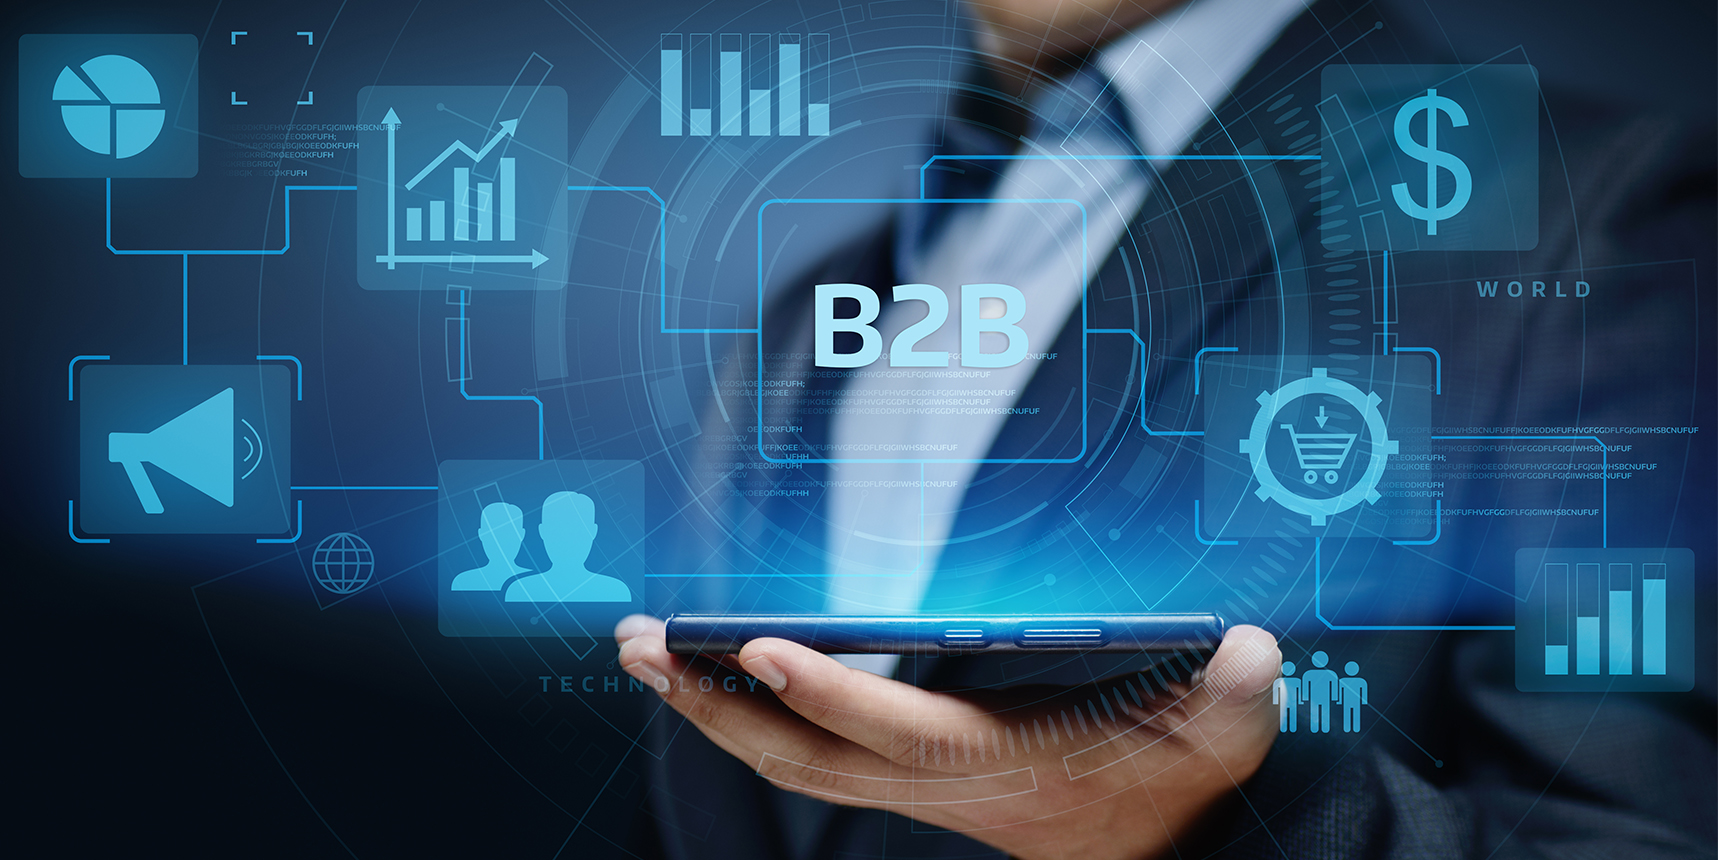 Pautas para marketing de empresas B2B